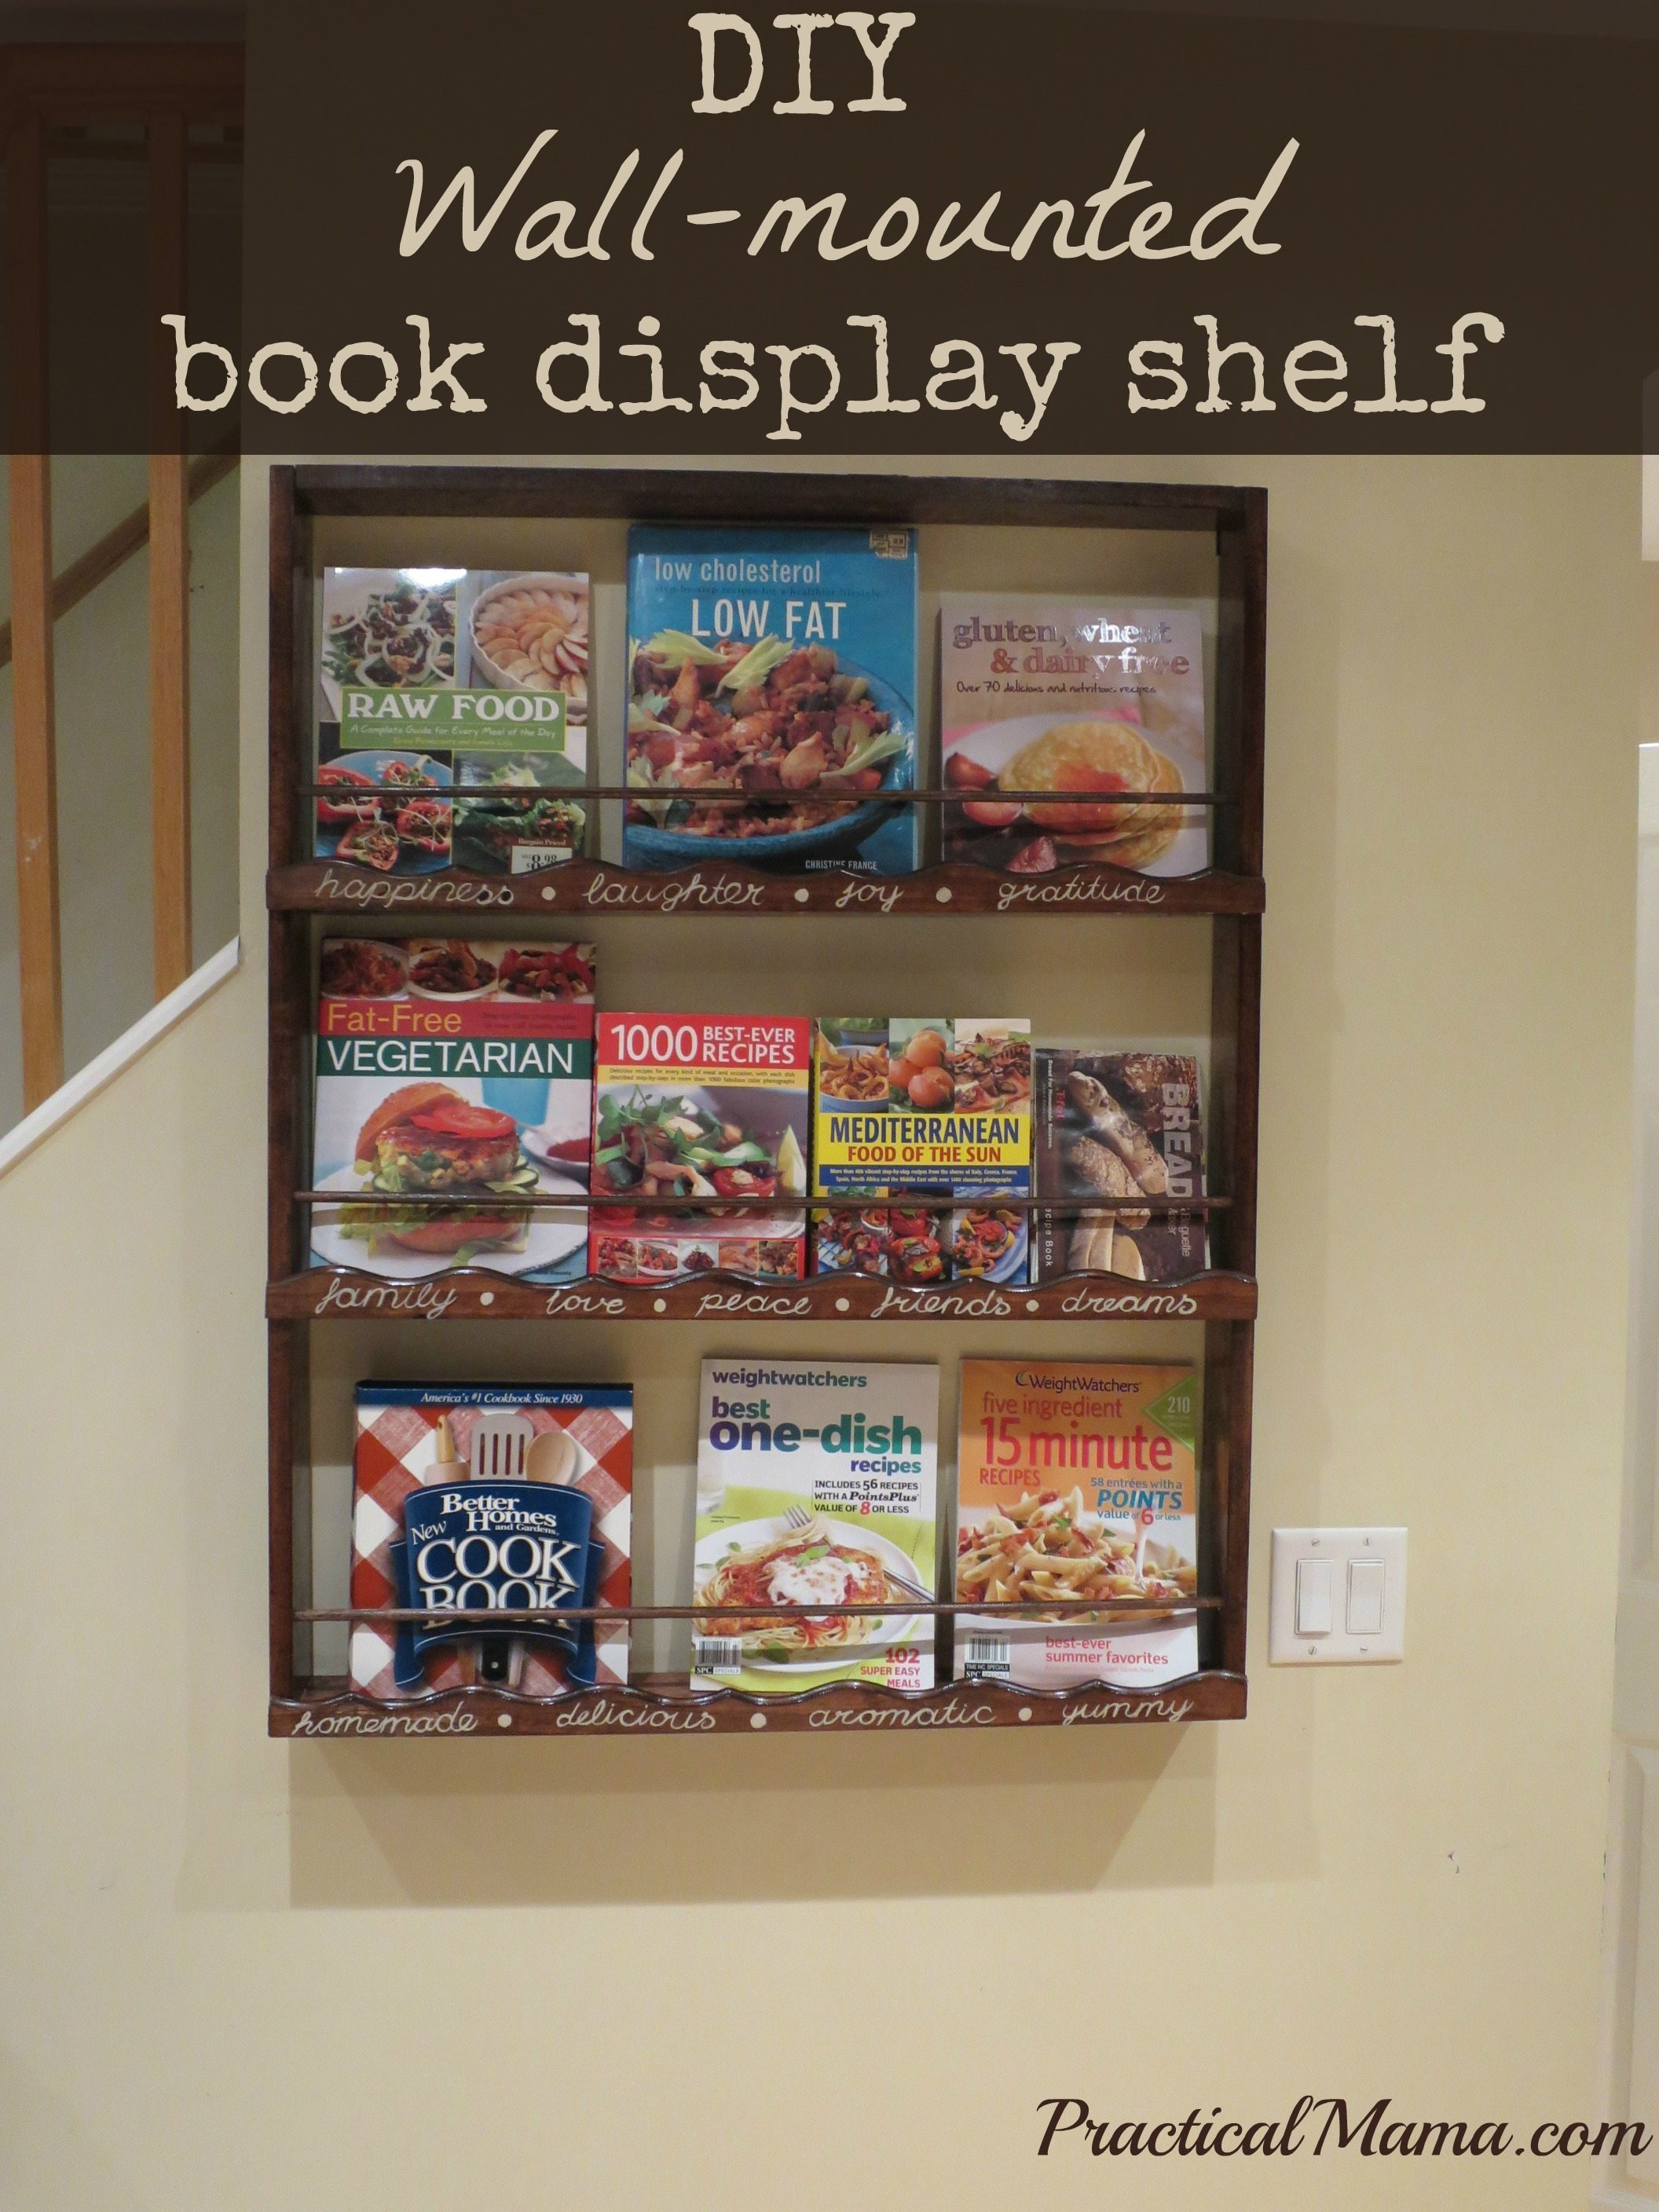 DIY: Wall-mounted book display shelf for my cookbooks